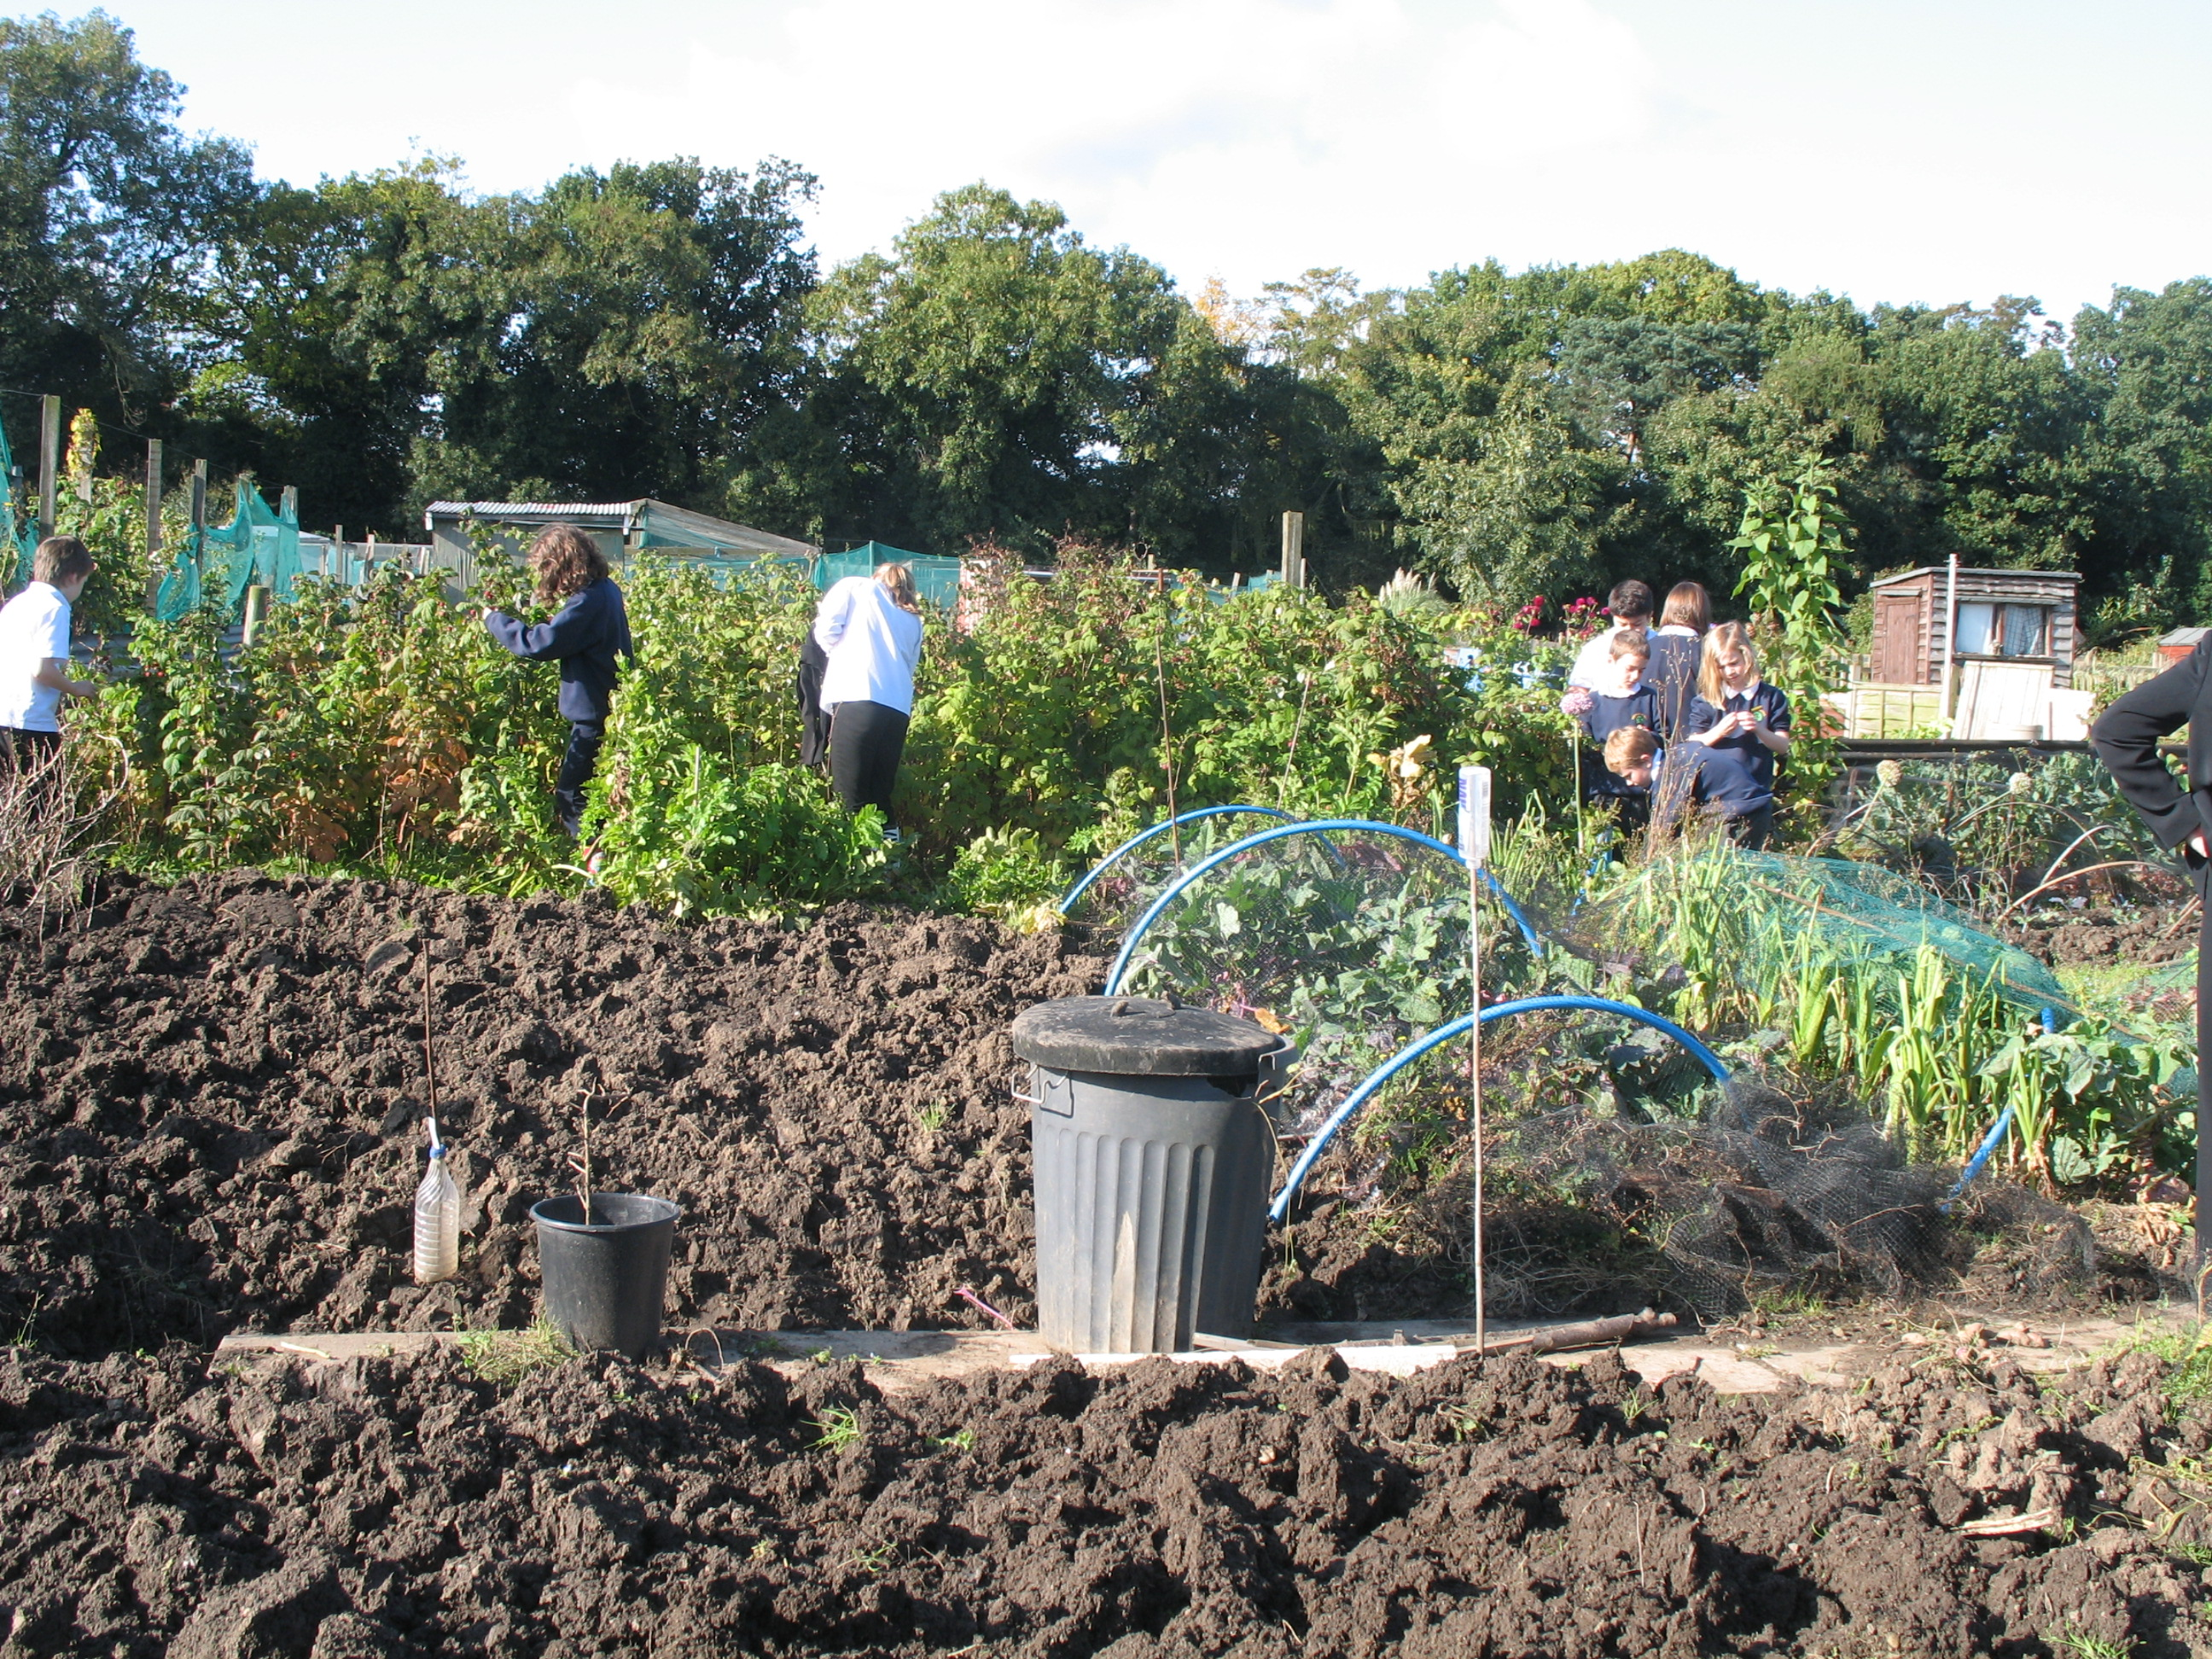 Preston Primary School Children enjoying an afternnoon in their allotment garden